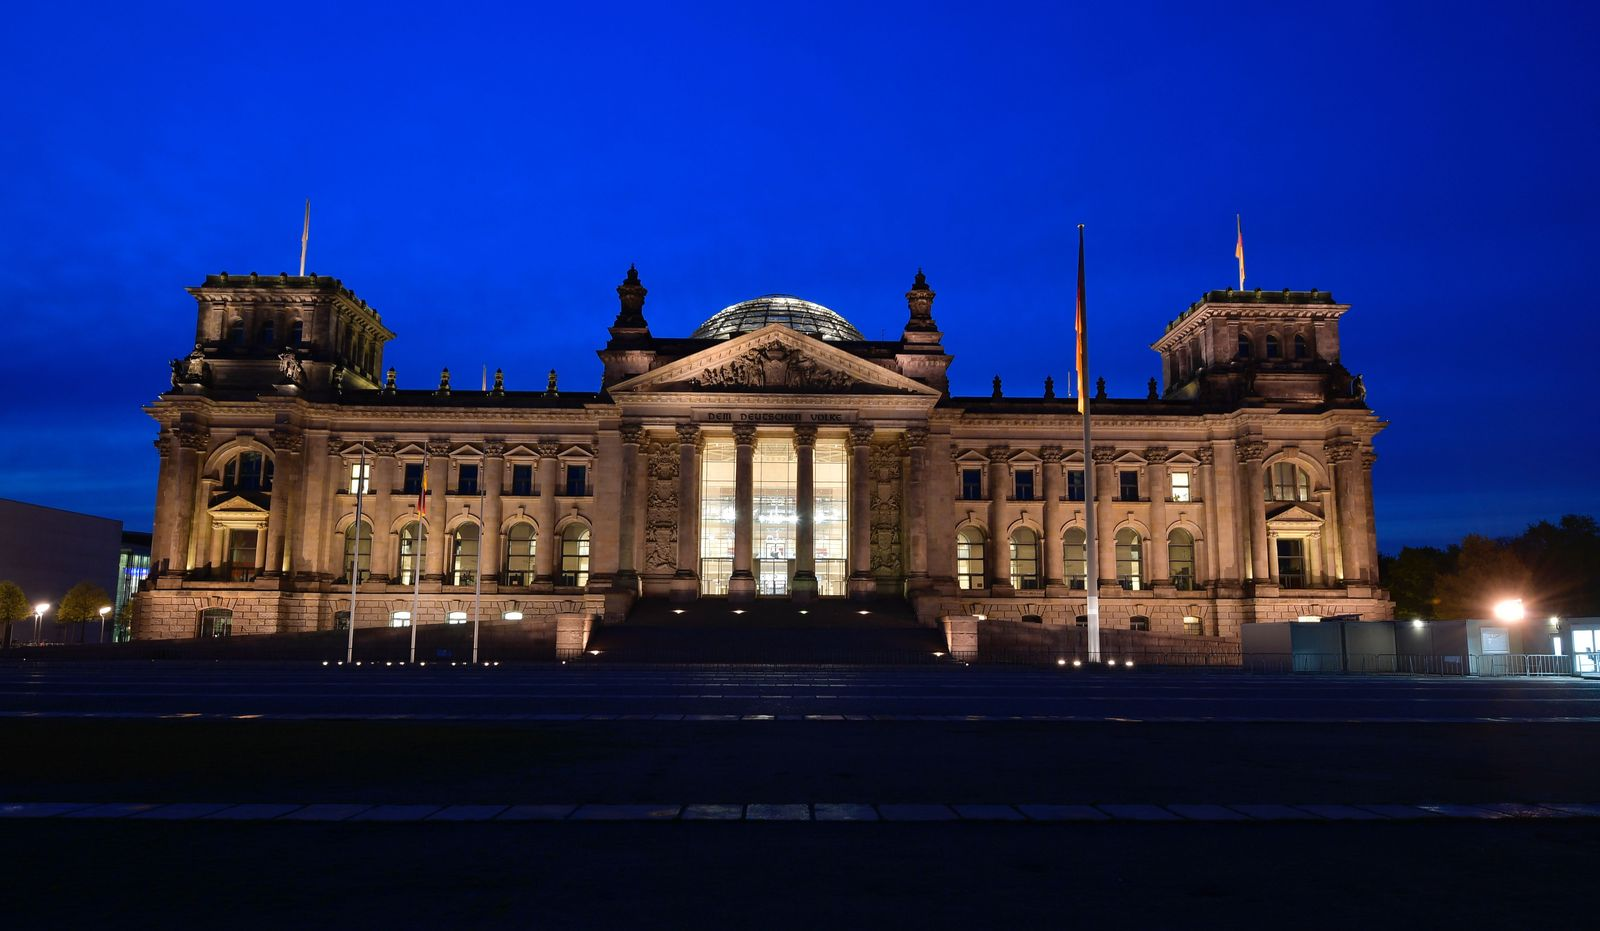 GERMANY-PARLIAMENT-ARCHITECTURE